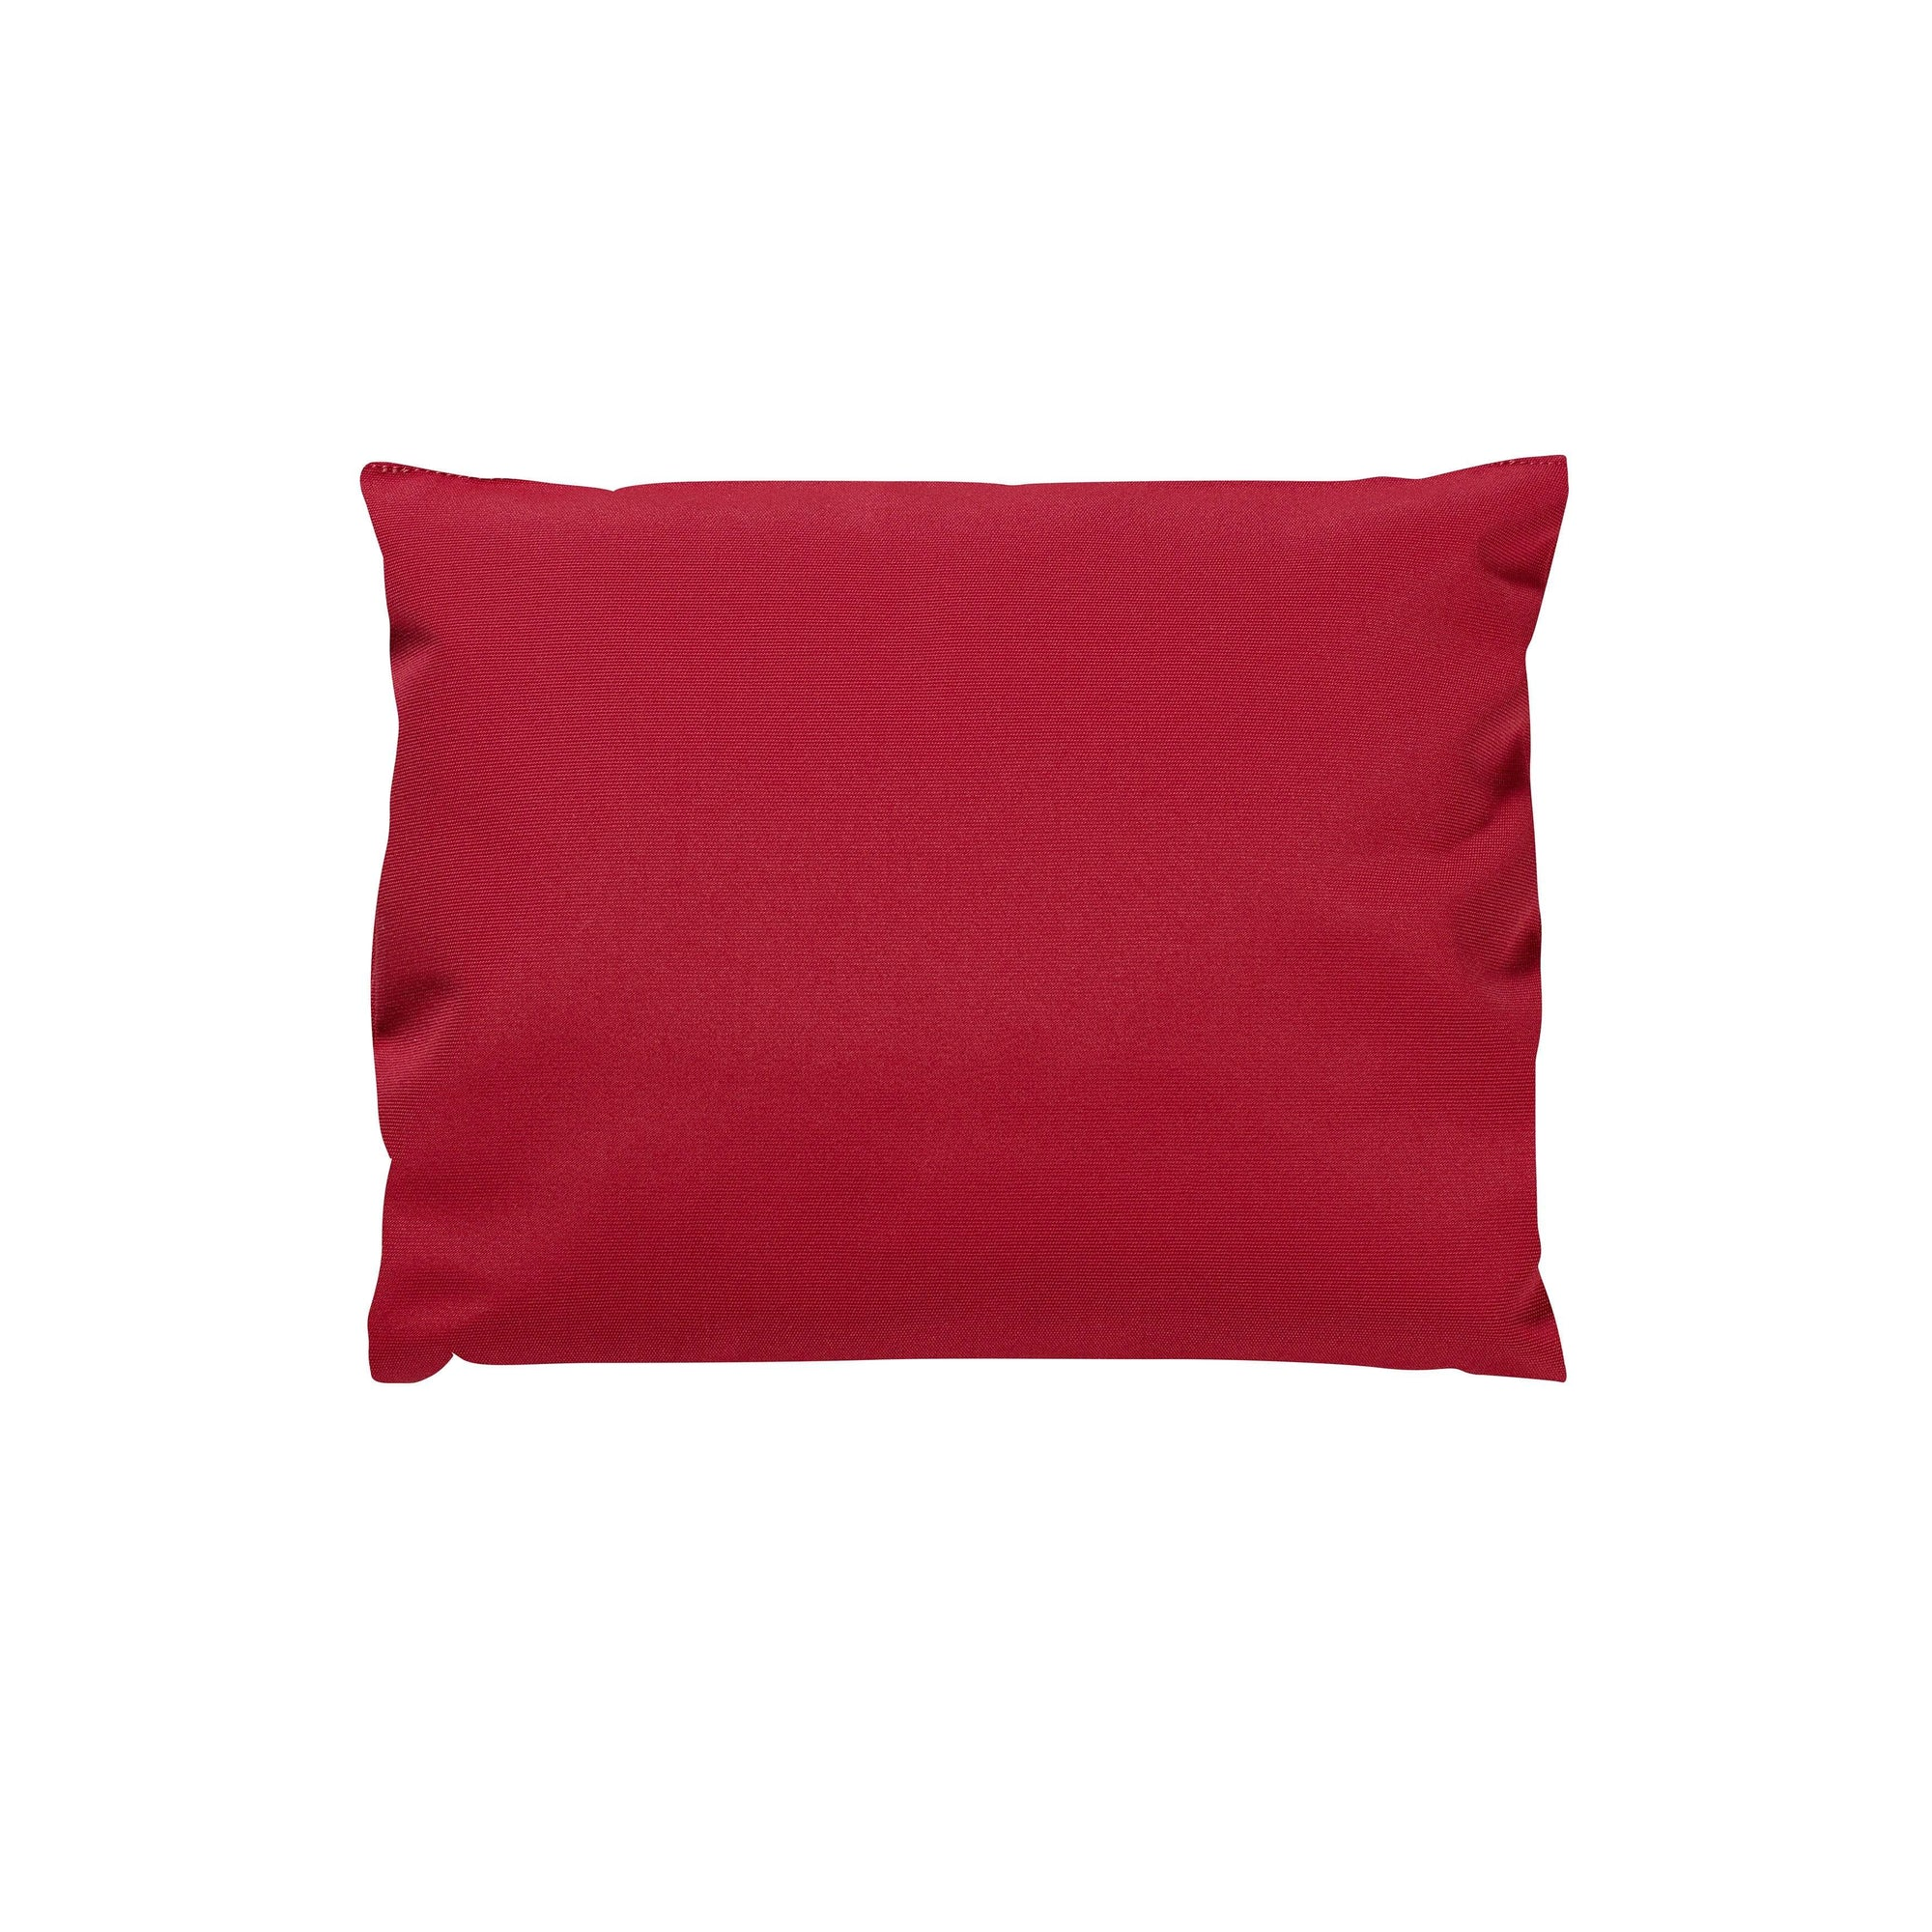 C.R. Plastic Products Cushion Canvas Jockey Red - 5403 A20 Head Rest Cushion